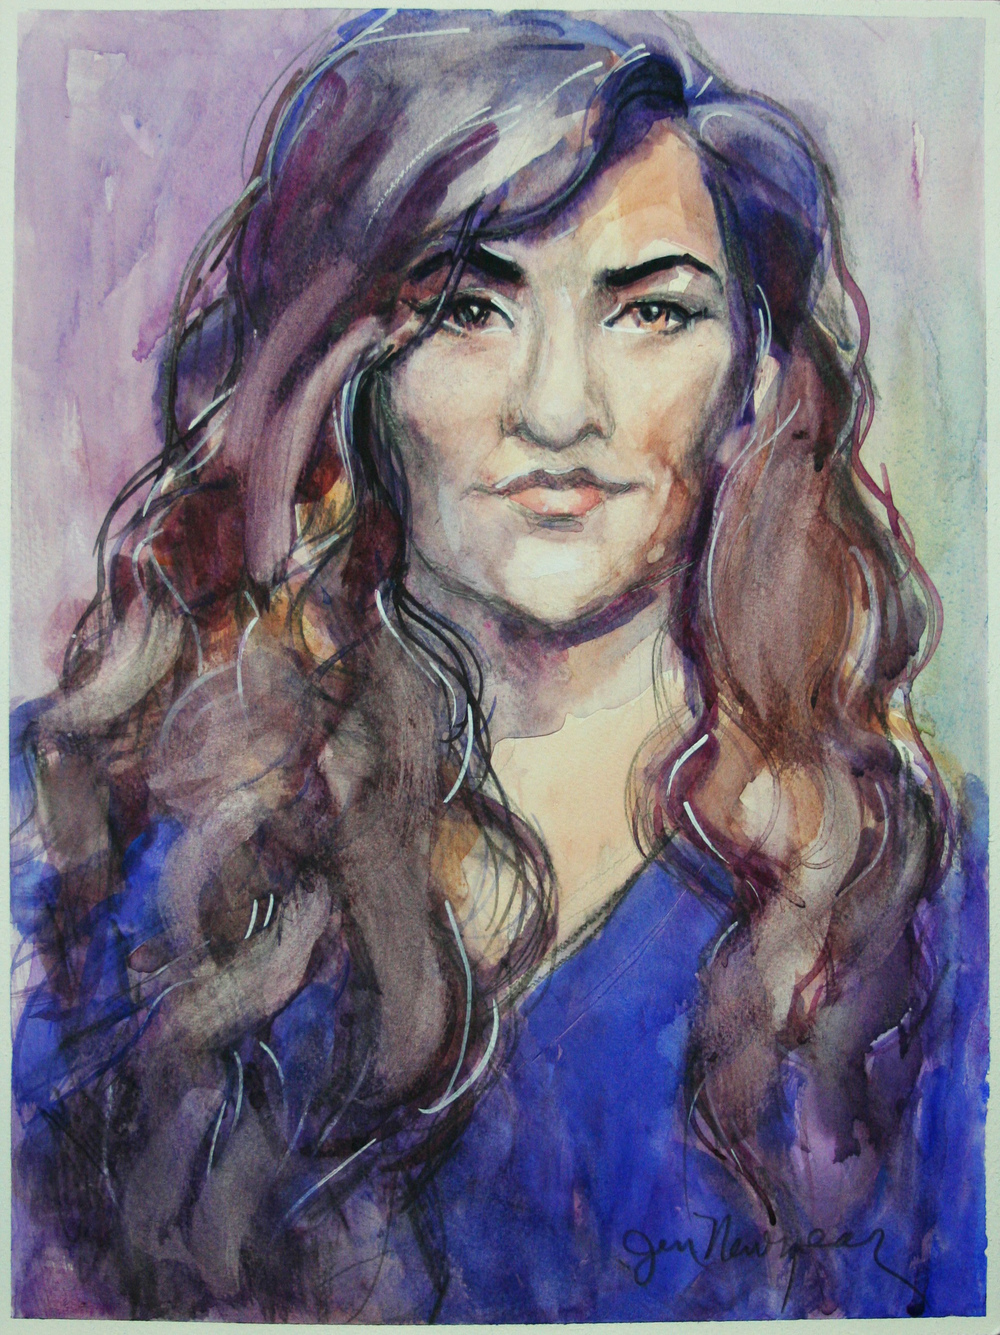 Jennifer Newyear did this 3-hour watercolor.